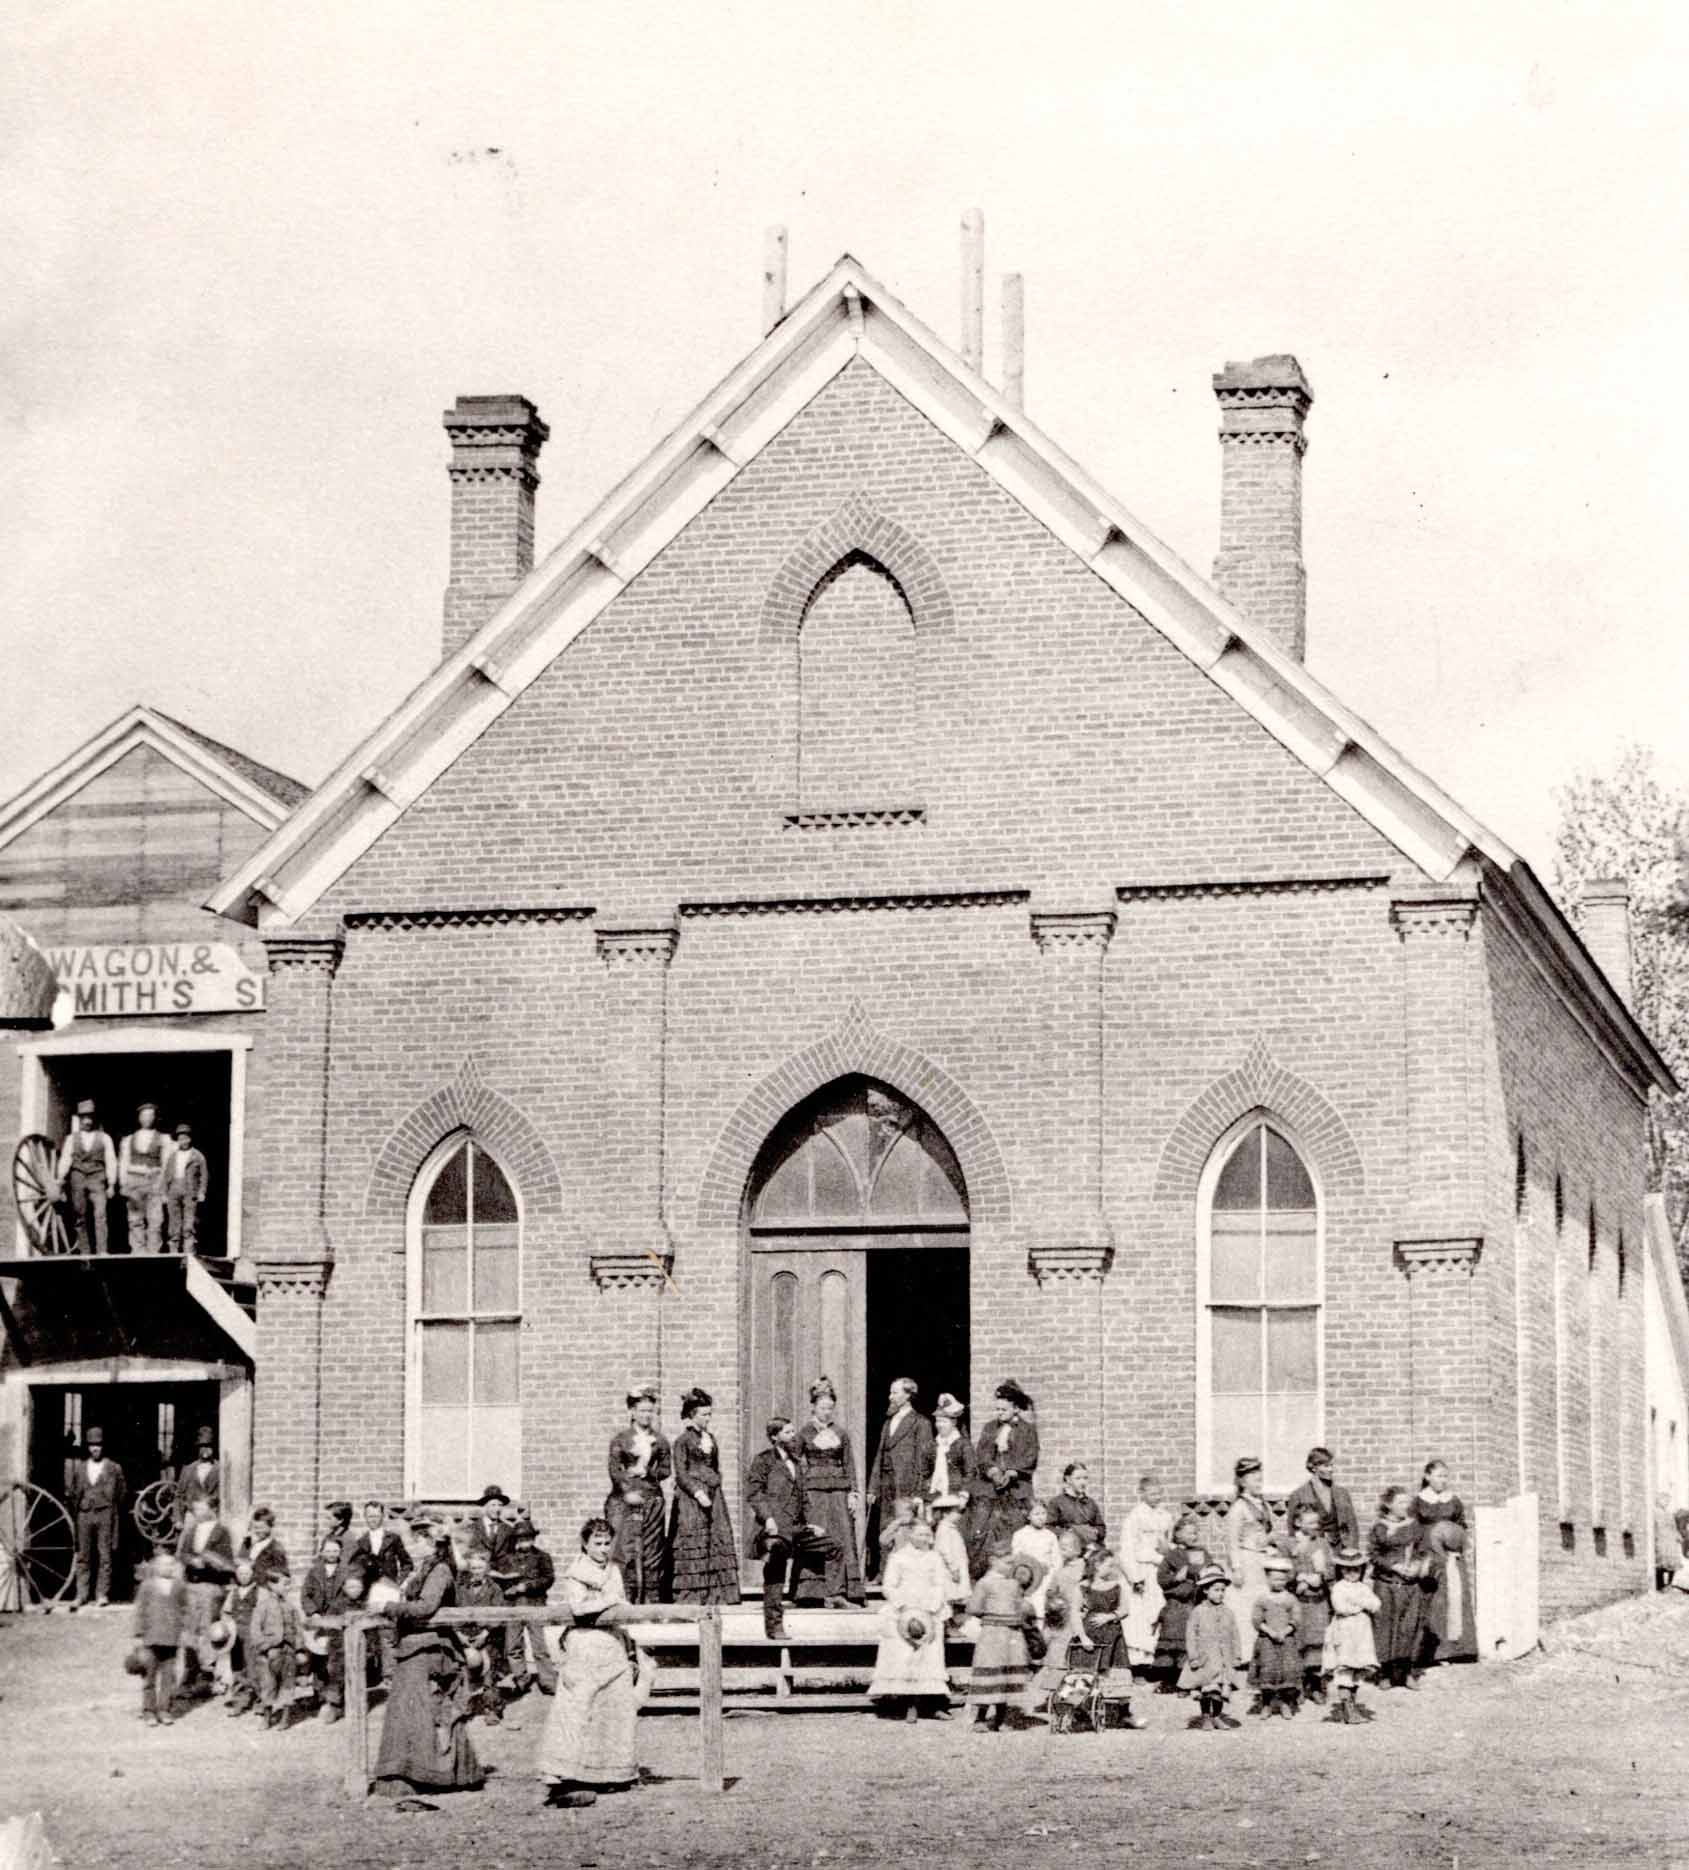 group of people standing in front of church building